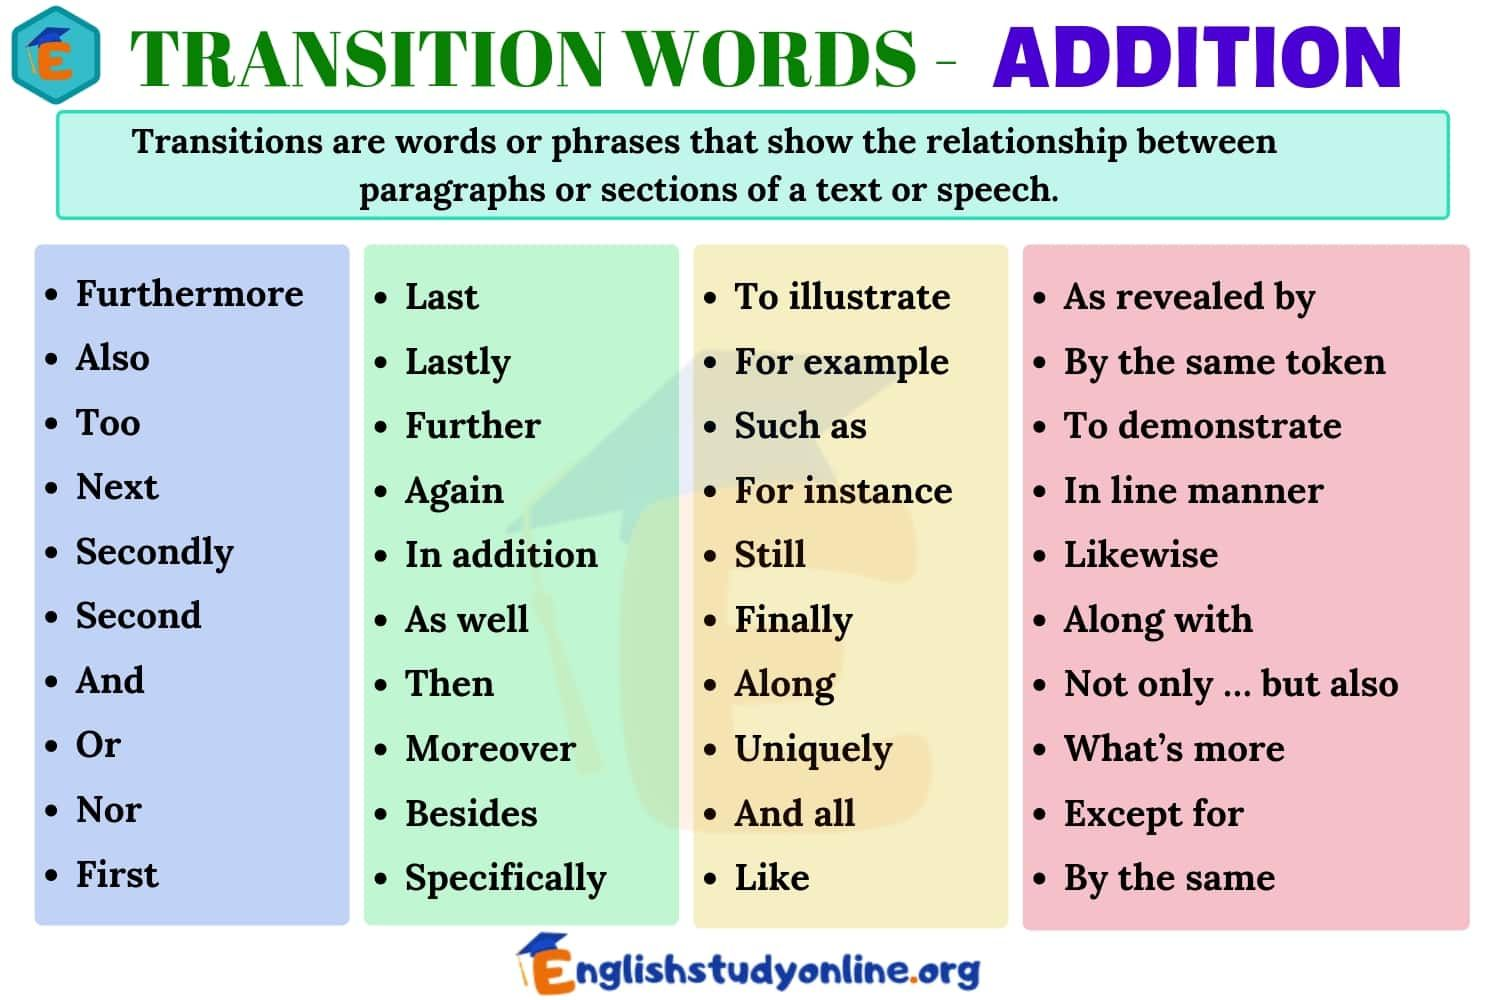 40 Common Transition Words